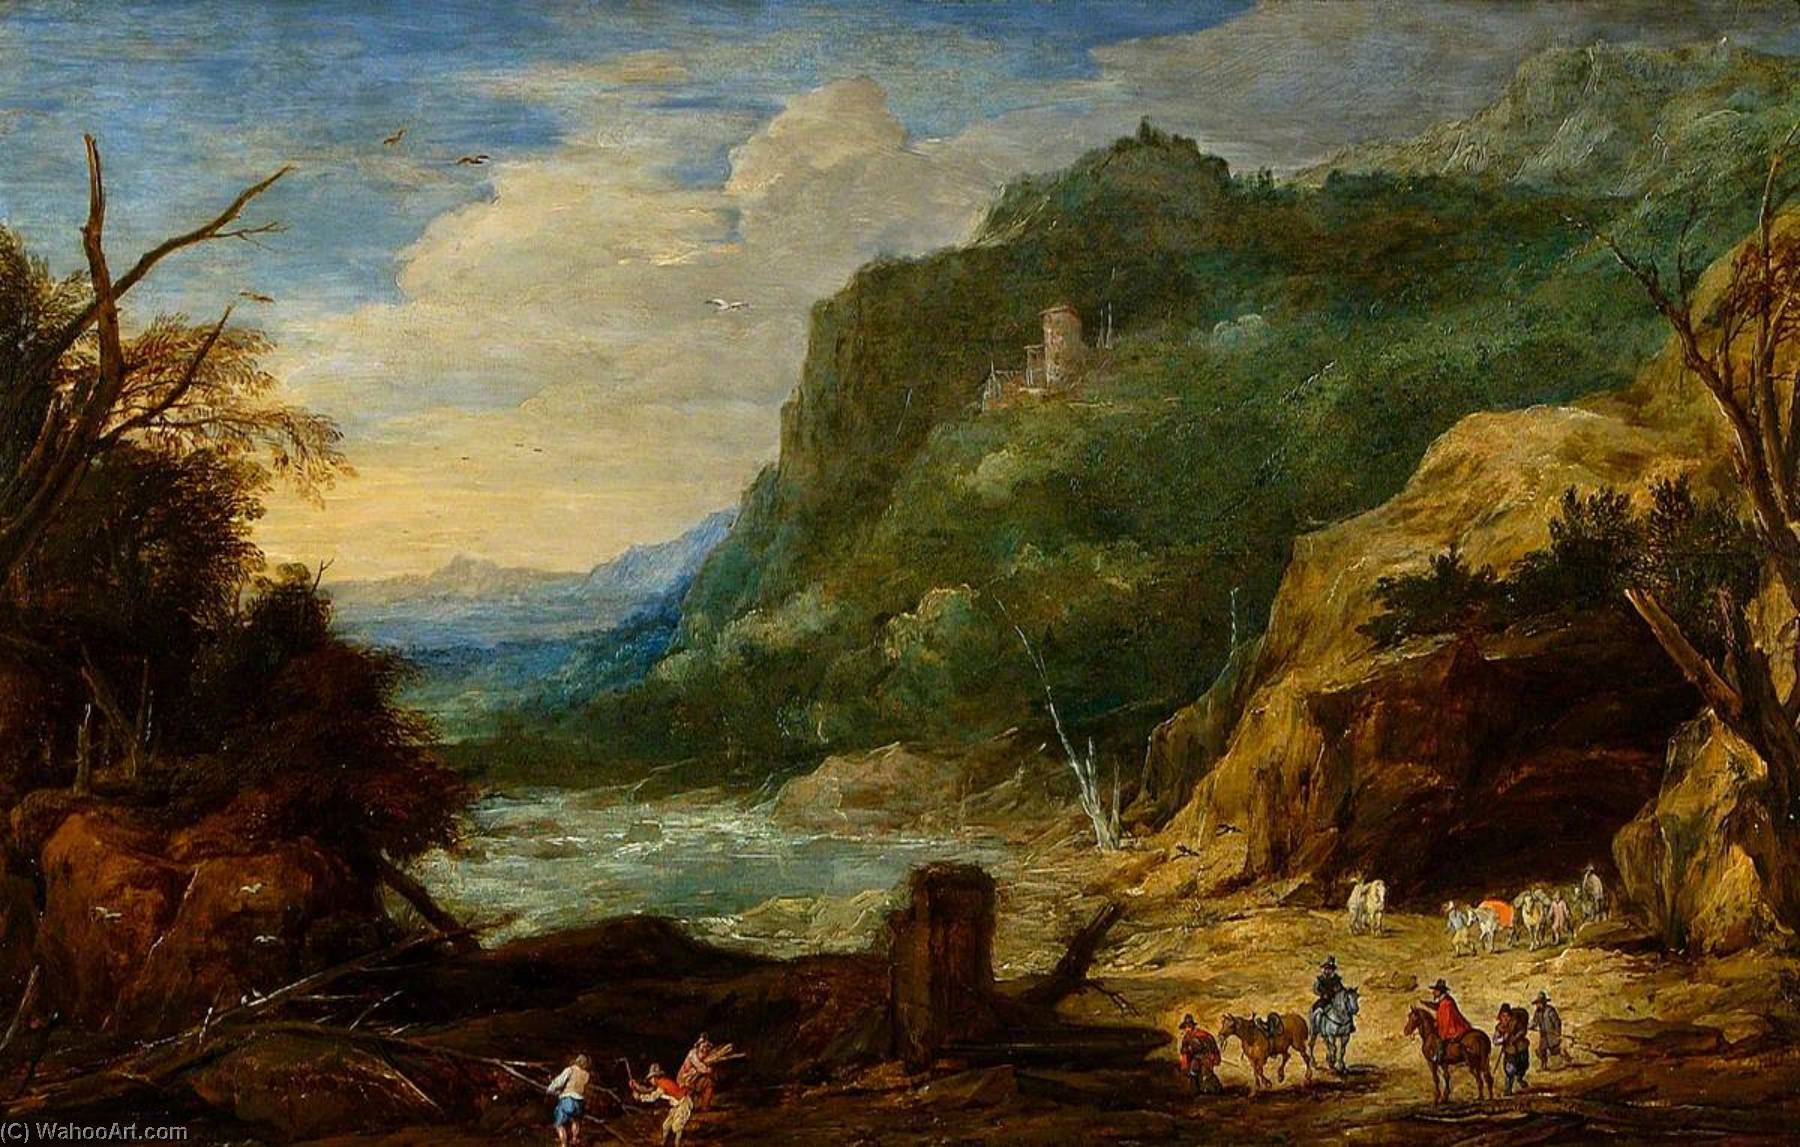 River with Castle, Horsemen and Woodcutters by Joos De Momper The Younger (1564-1635) | Museum Quality Reproductions | WahooArt.com